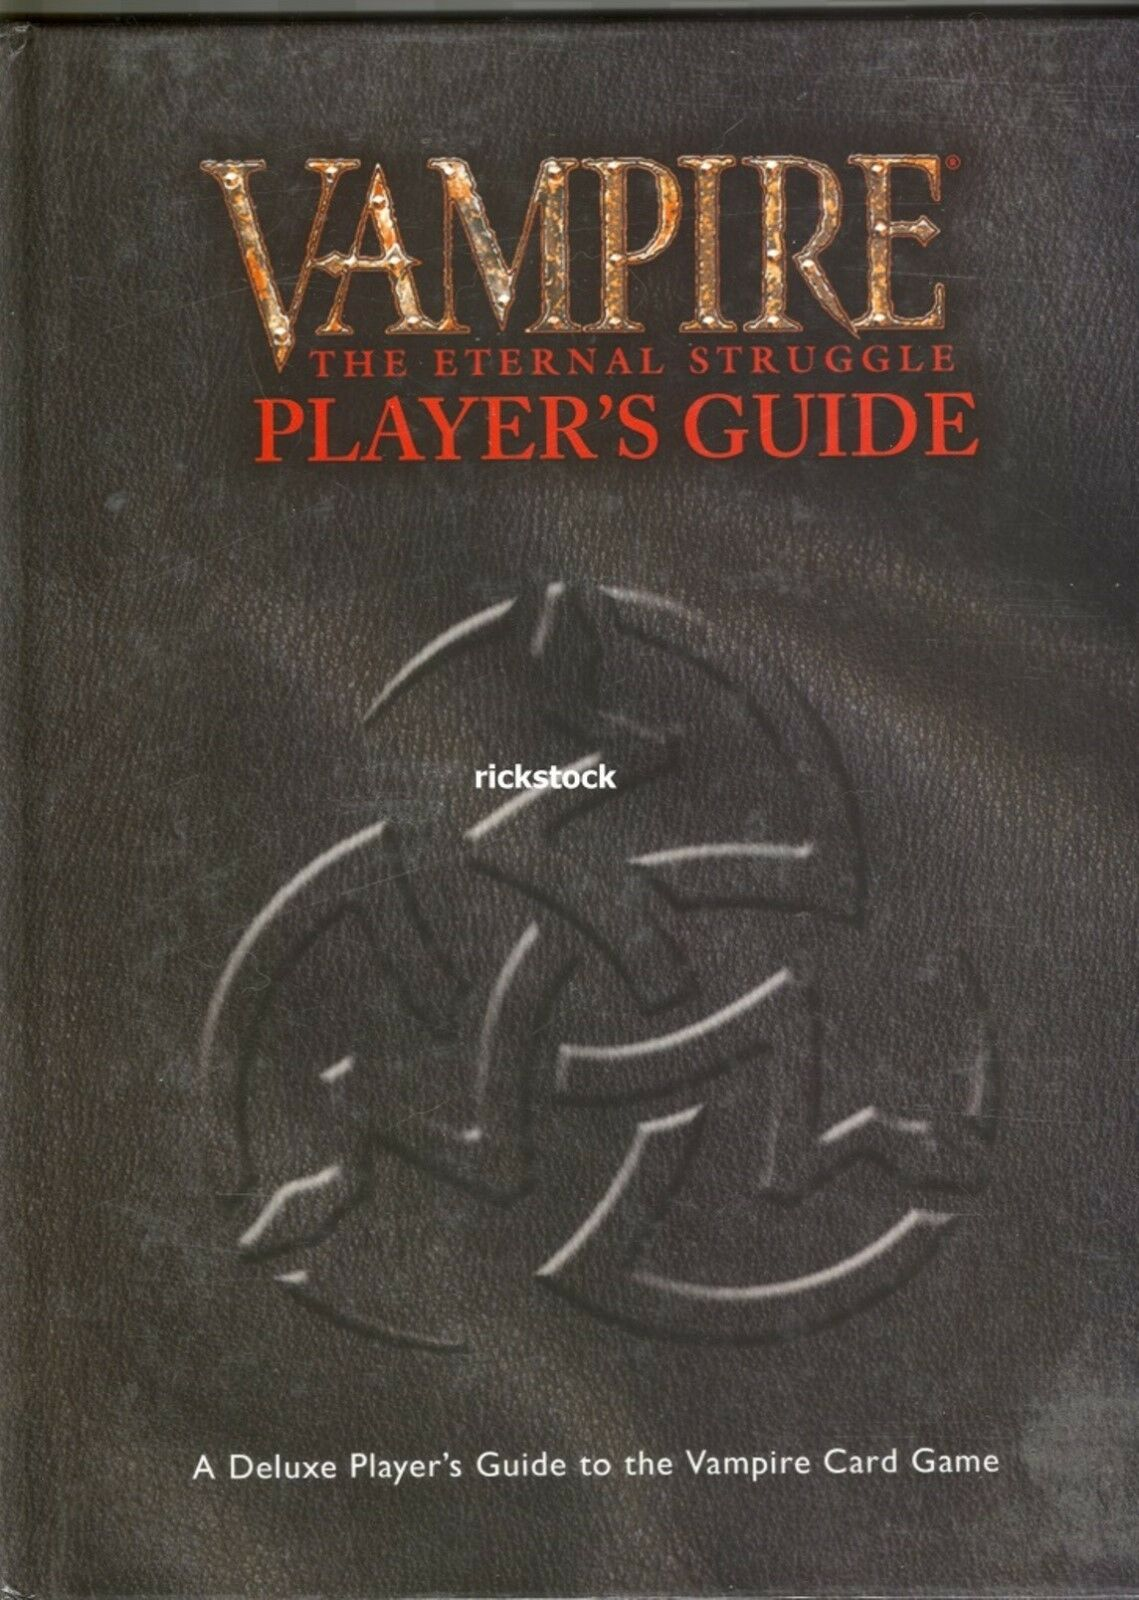 Vampire: The Eternal Struggle: Player's Guide